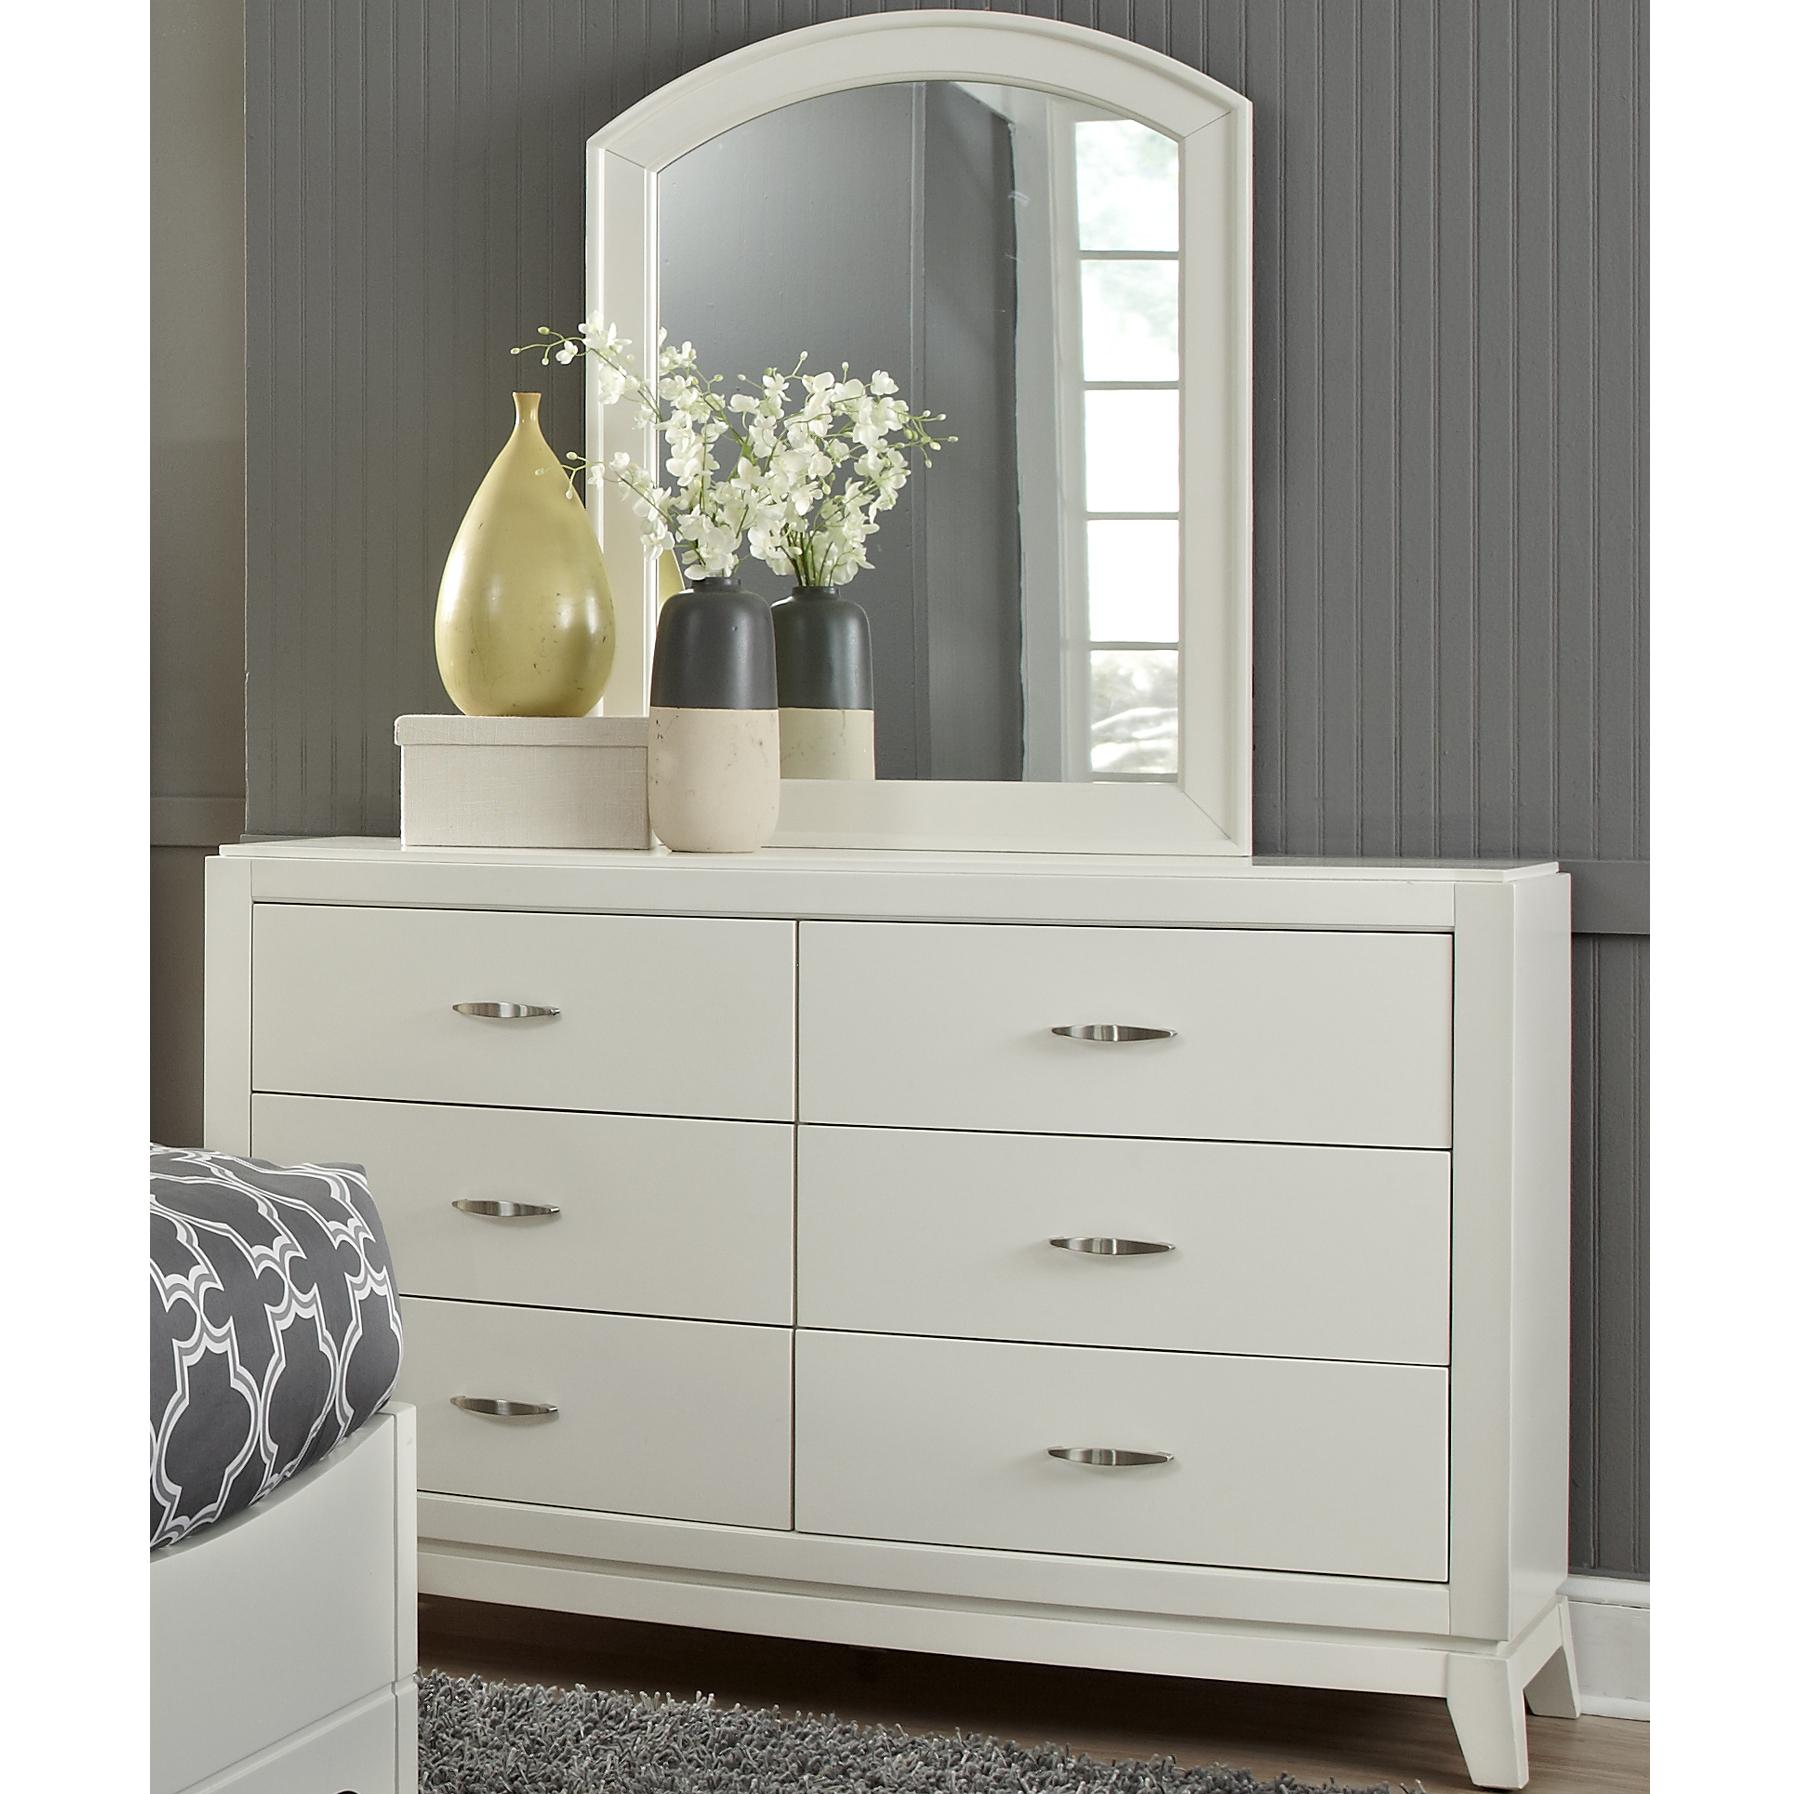 Liberty Furniture Avalon II Dresser and Mirror - Item Number: 205-YBR-DM